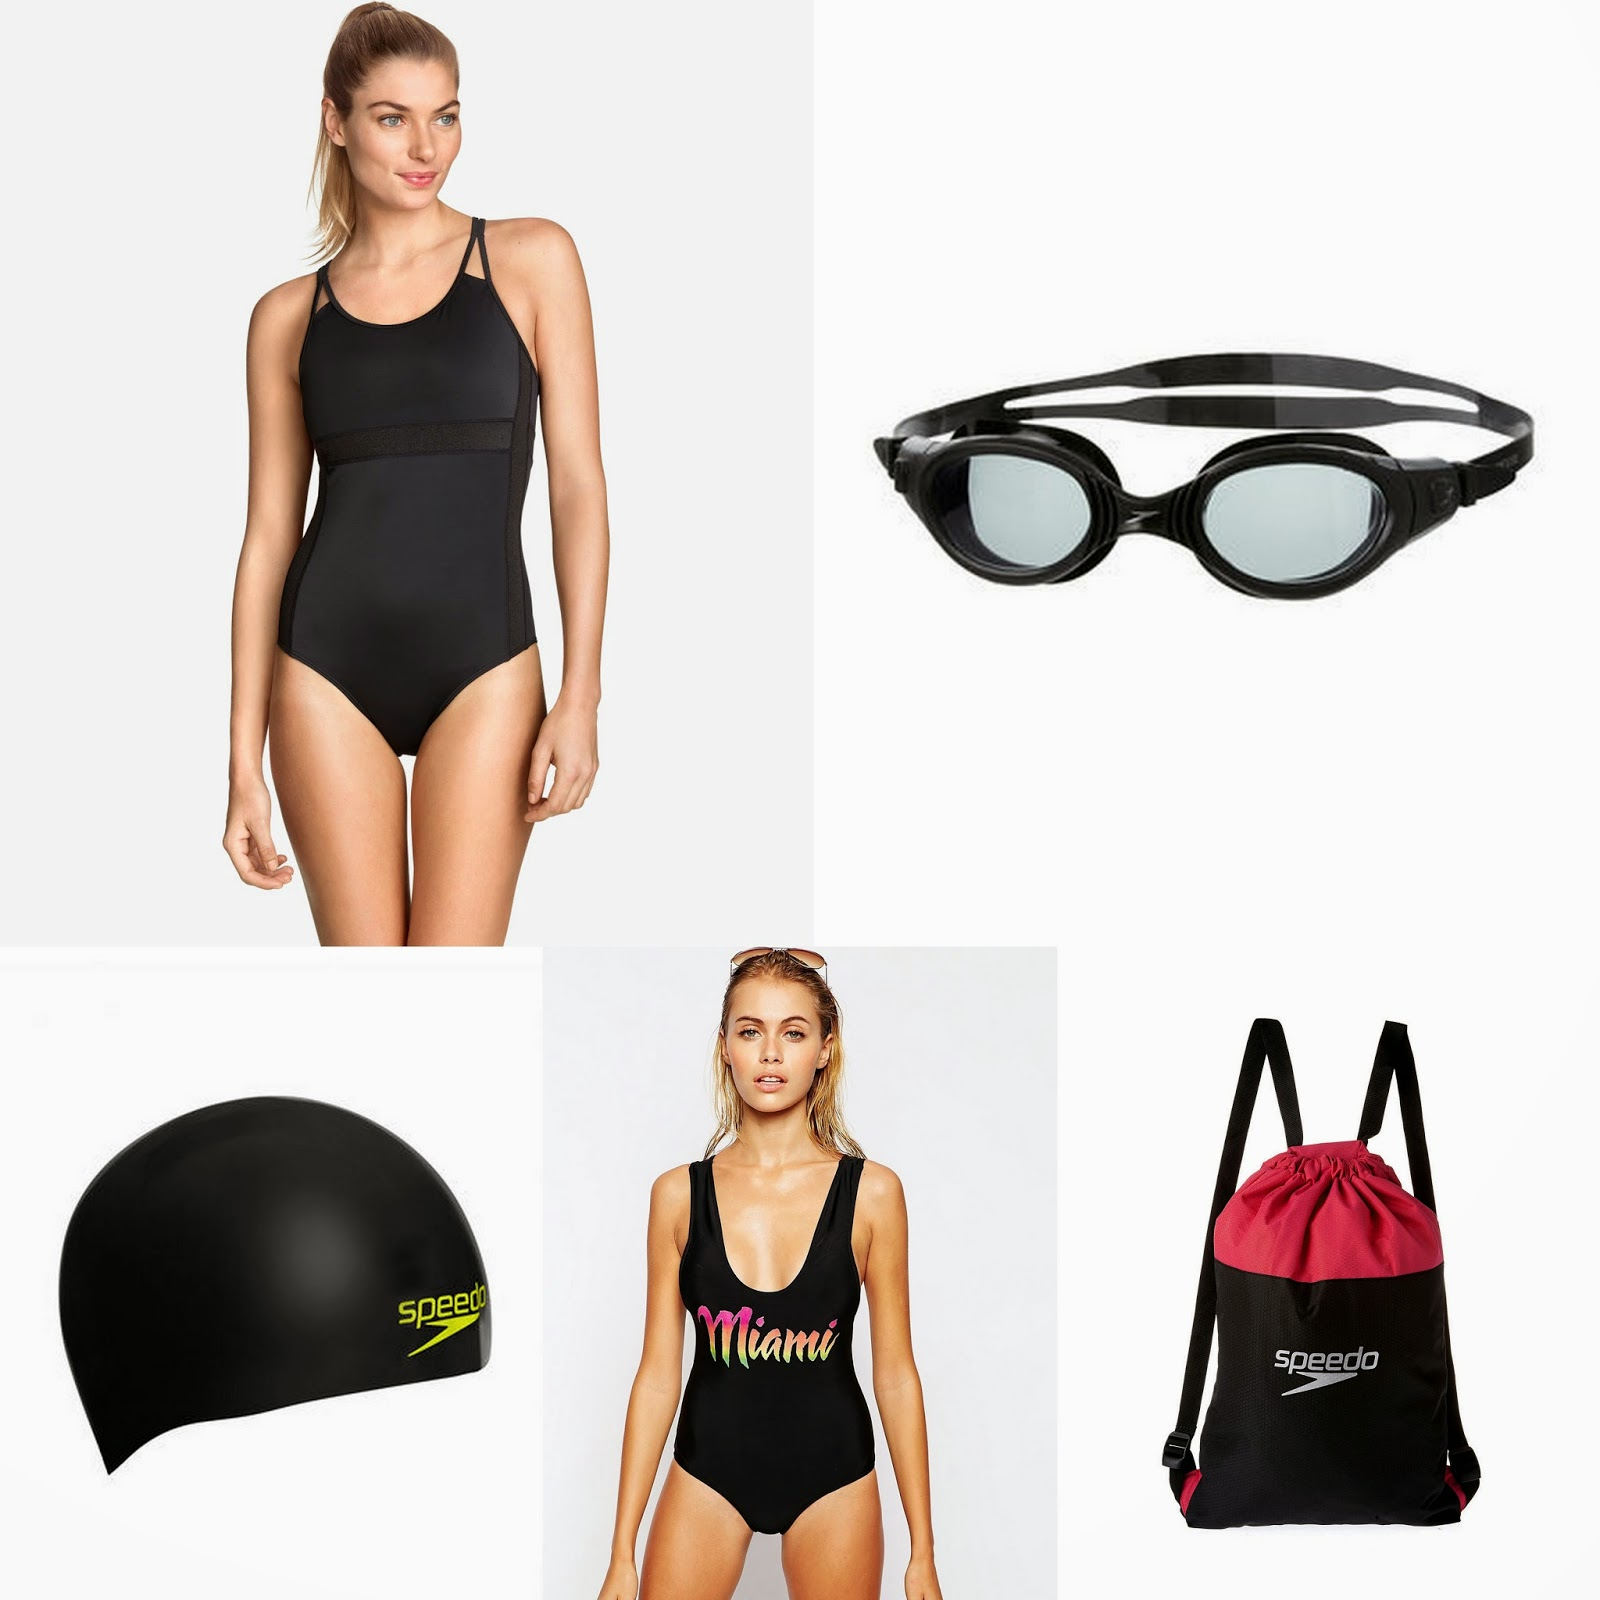 Swimming Outfits